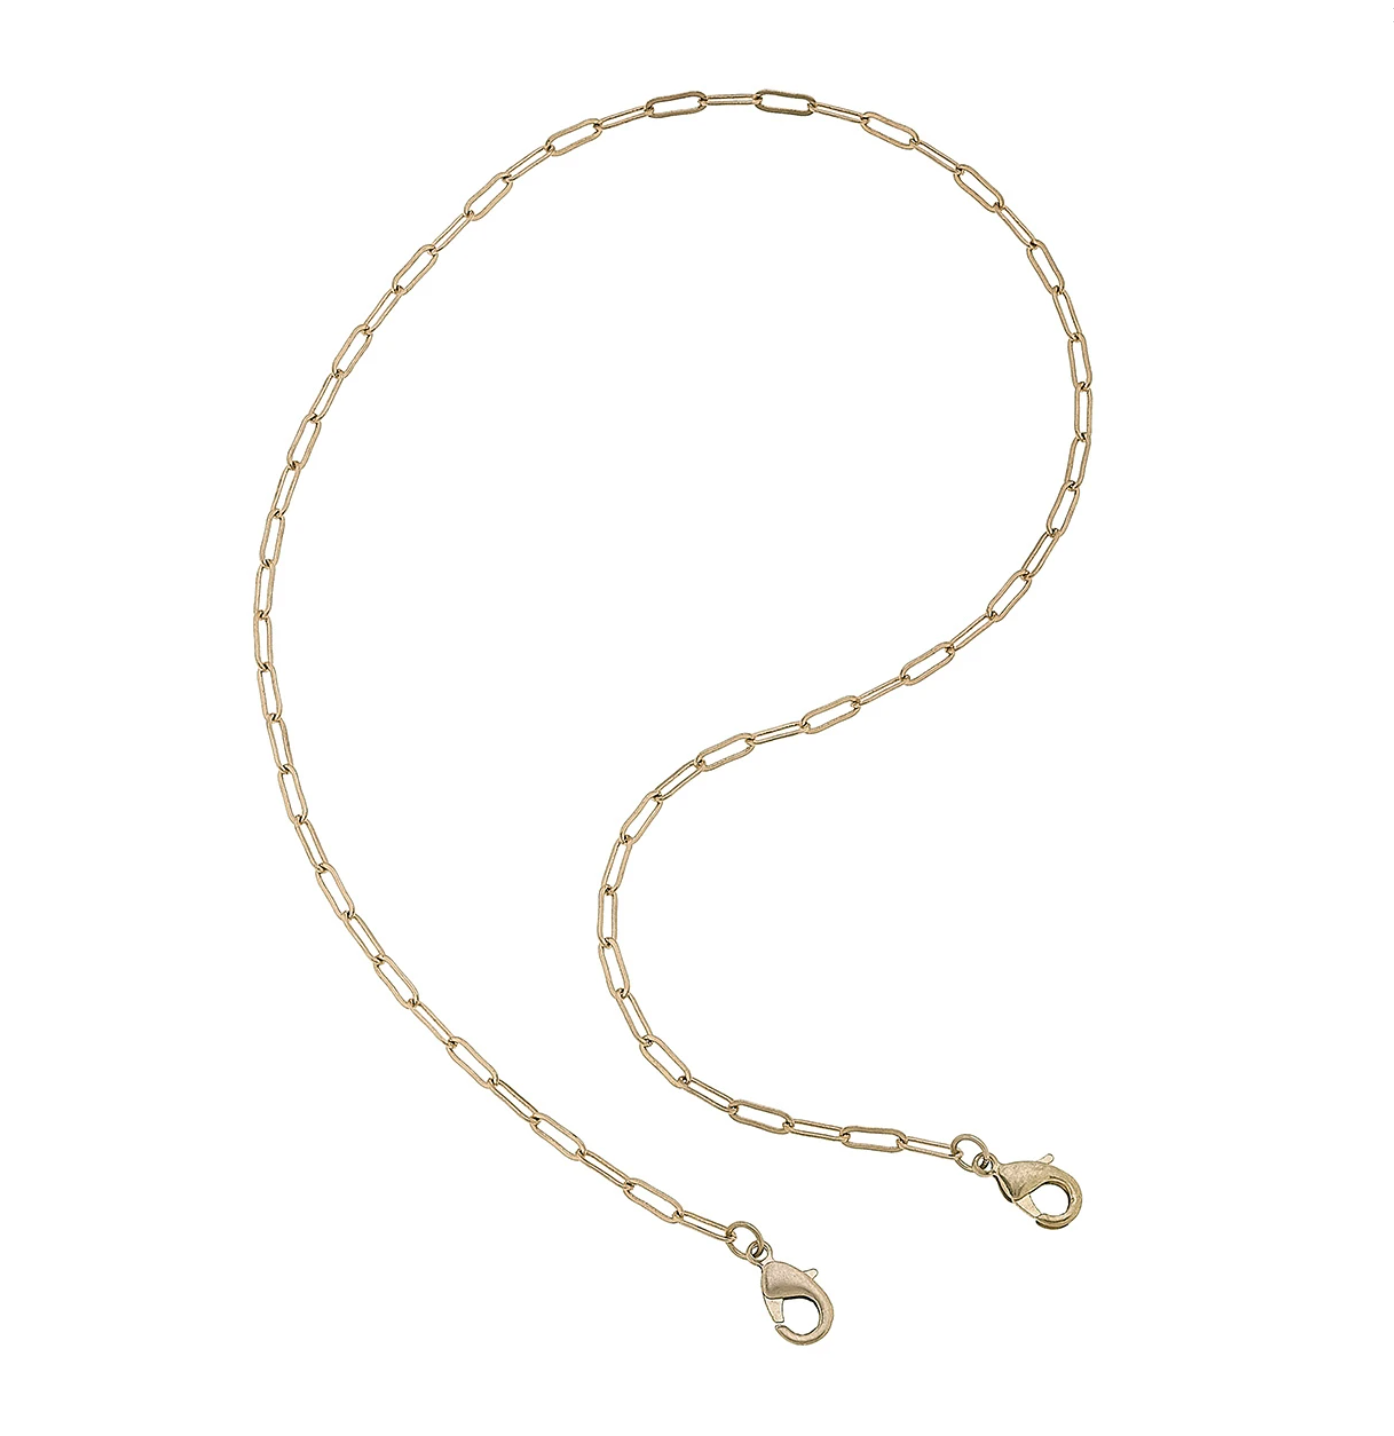 Chain Mask Necklace 22010M-WG-32